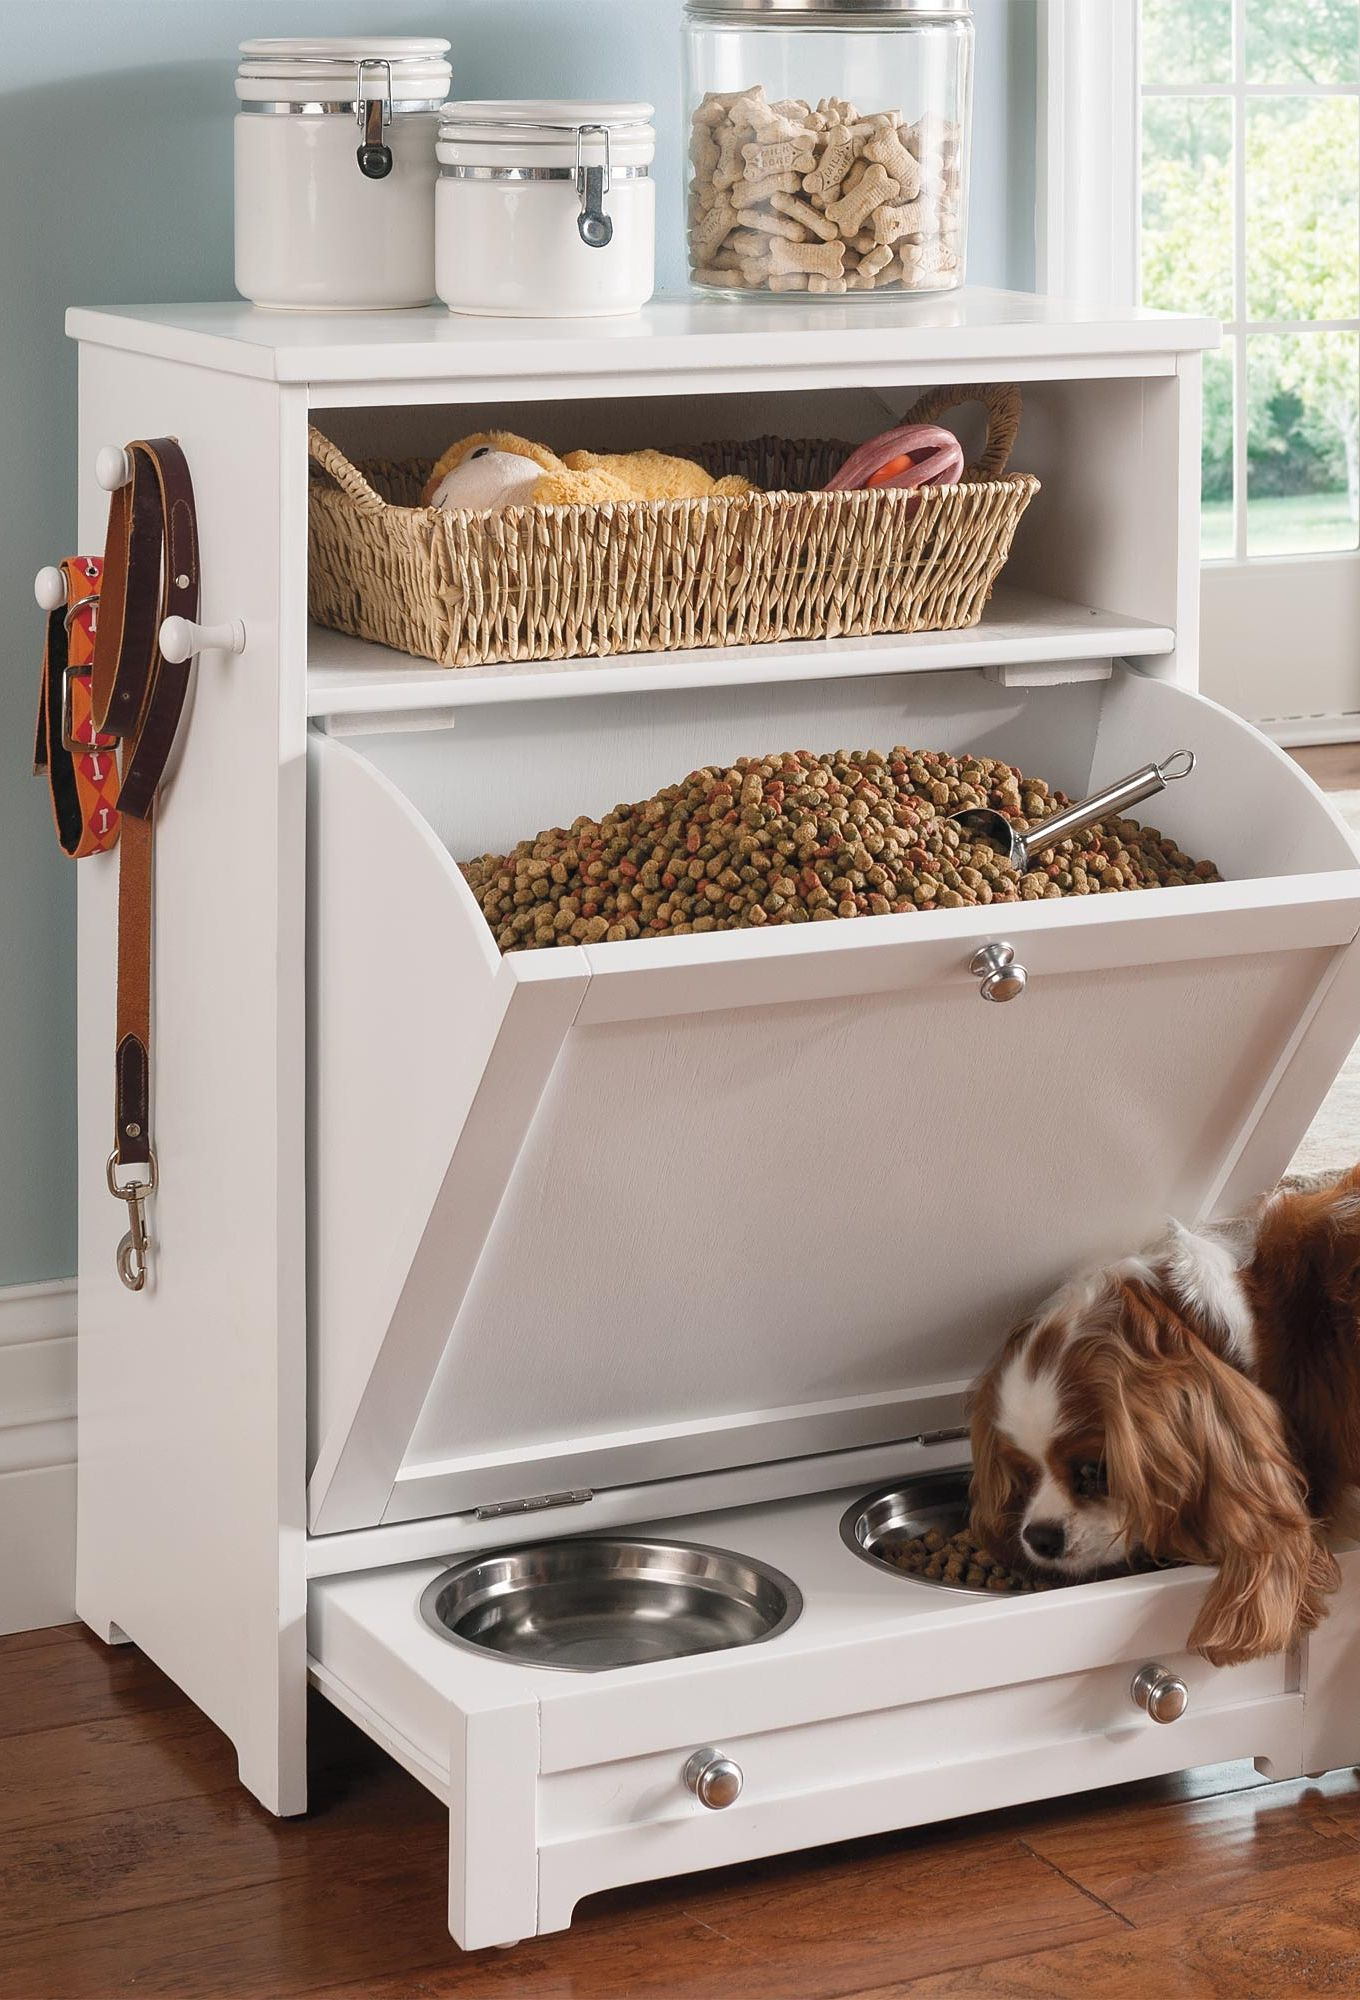 Food dog stylish storage recommendations dress in winter in 2019